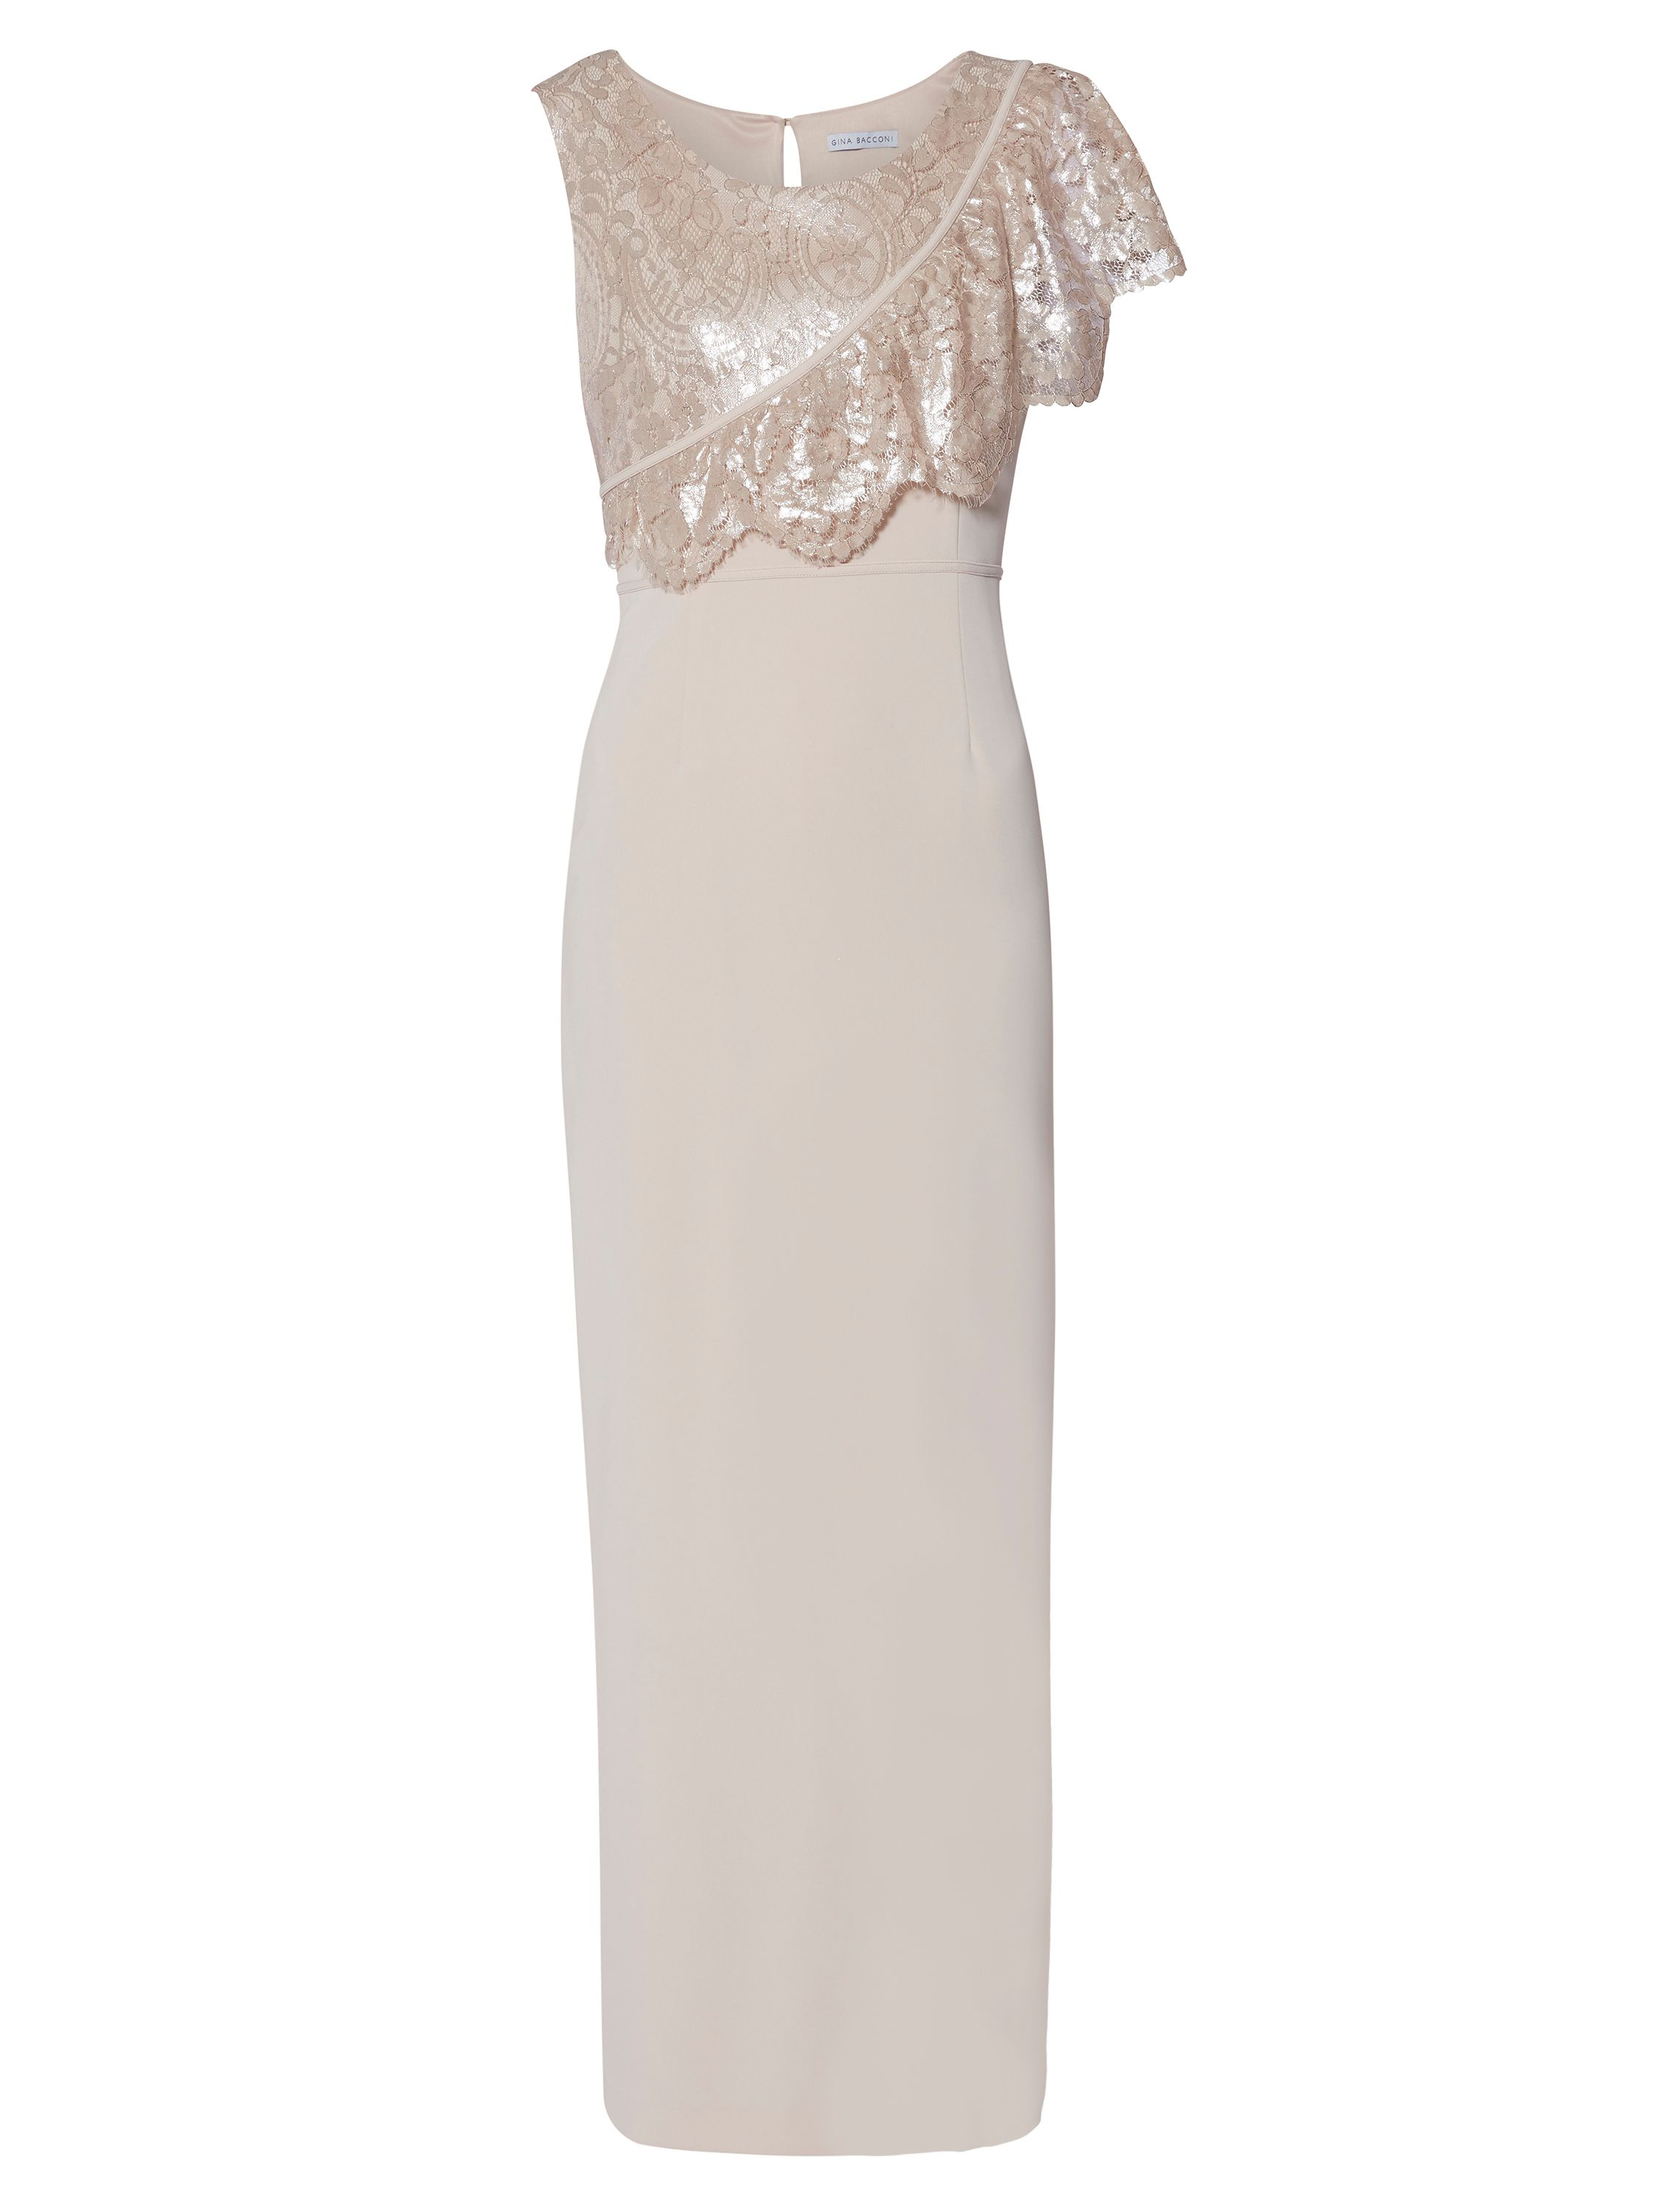 Gina Bacconi Henrietta Maxi Dress, Dusty Pink